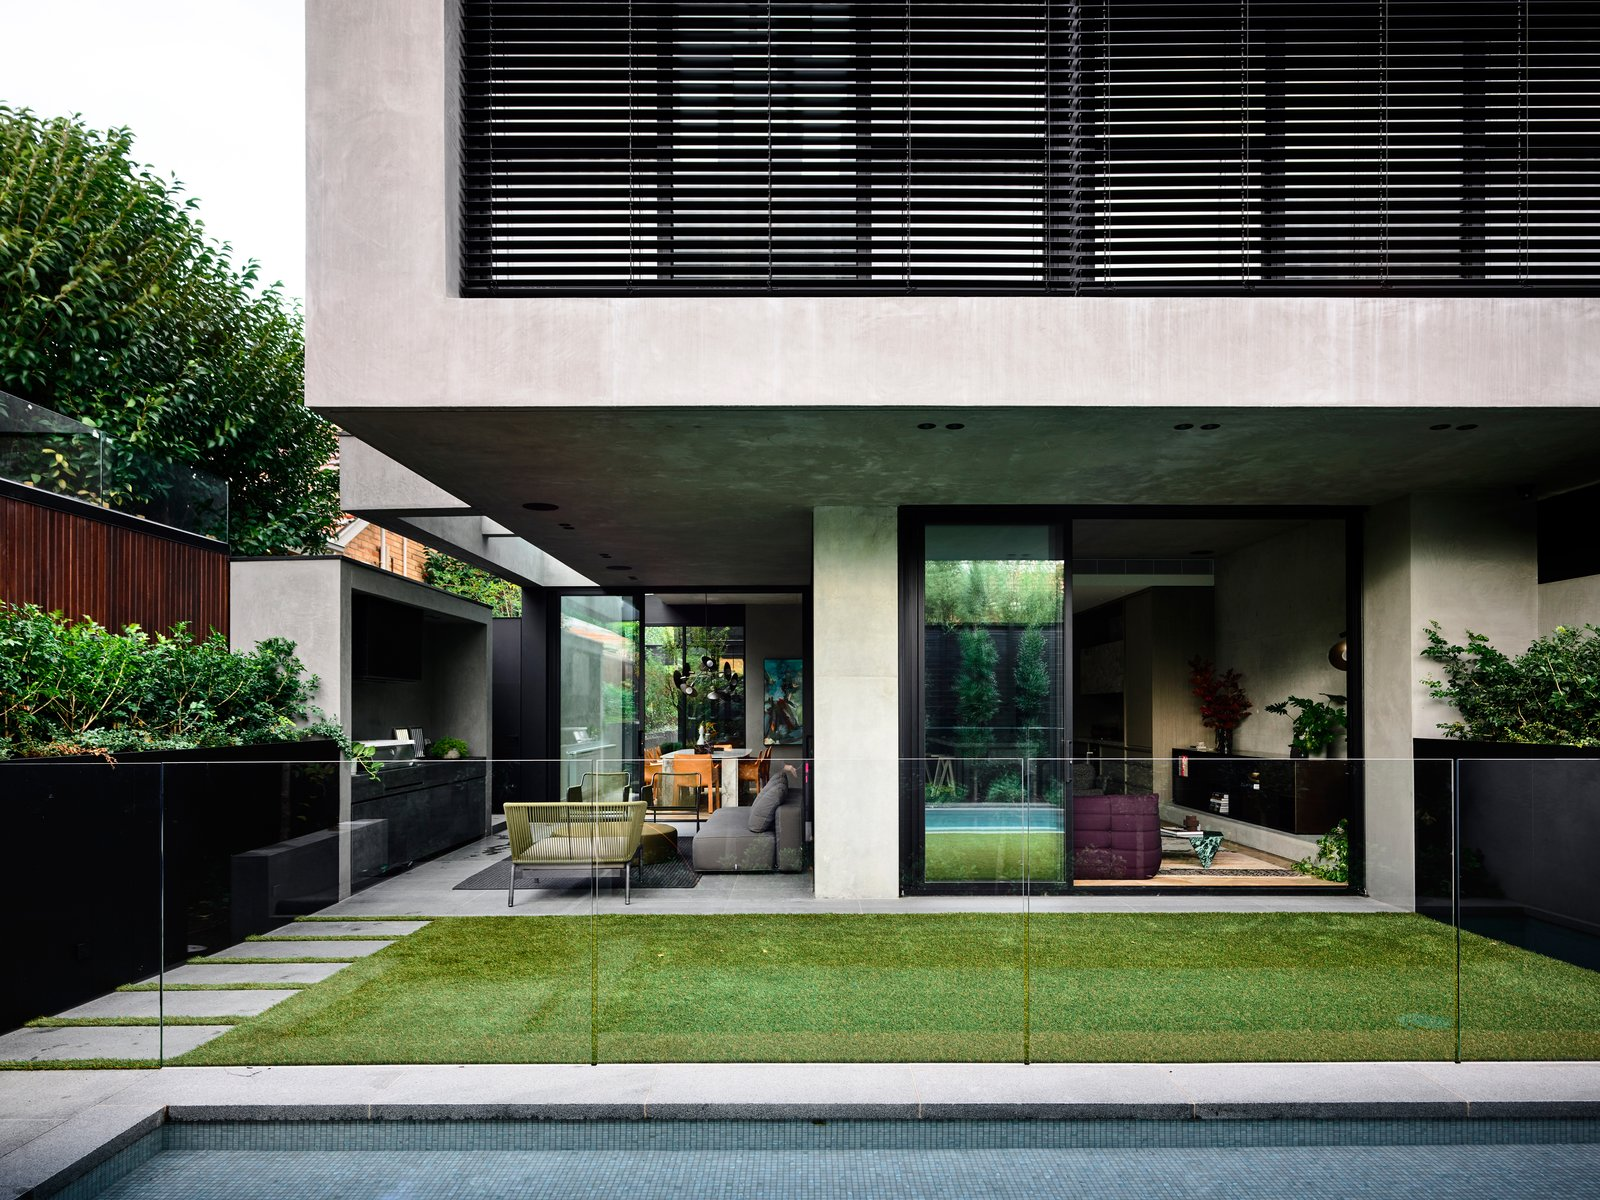 Outdoor, Grass, Raised Planters, Vertical, Large, and Large The meticulous landscaping was achieved by Australian landscape architect Jack Merlo.  Best Outdoor Vertical Raised Planters Photos from A Strong Builder Bond Results in a Sophisticated Australian Home